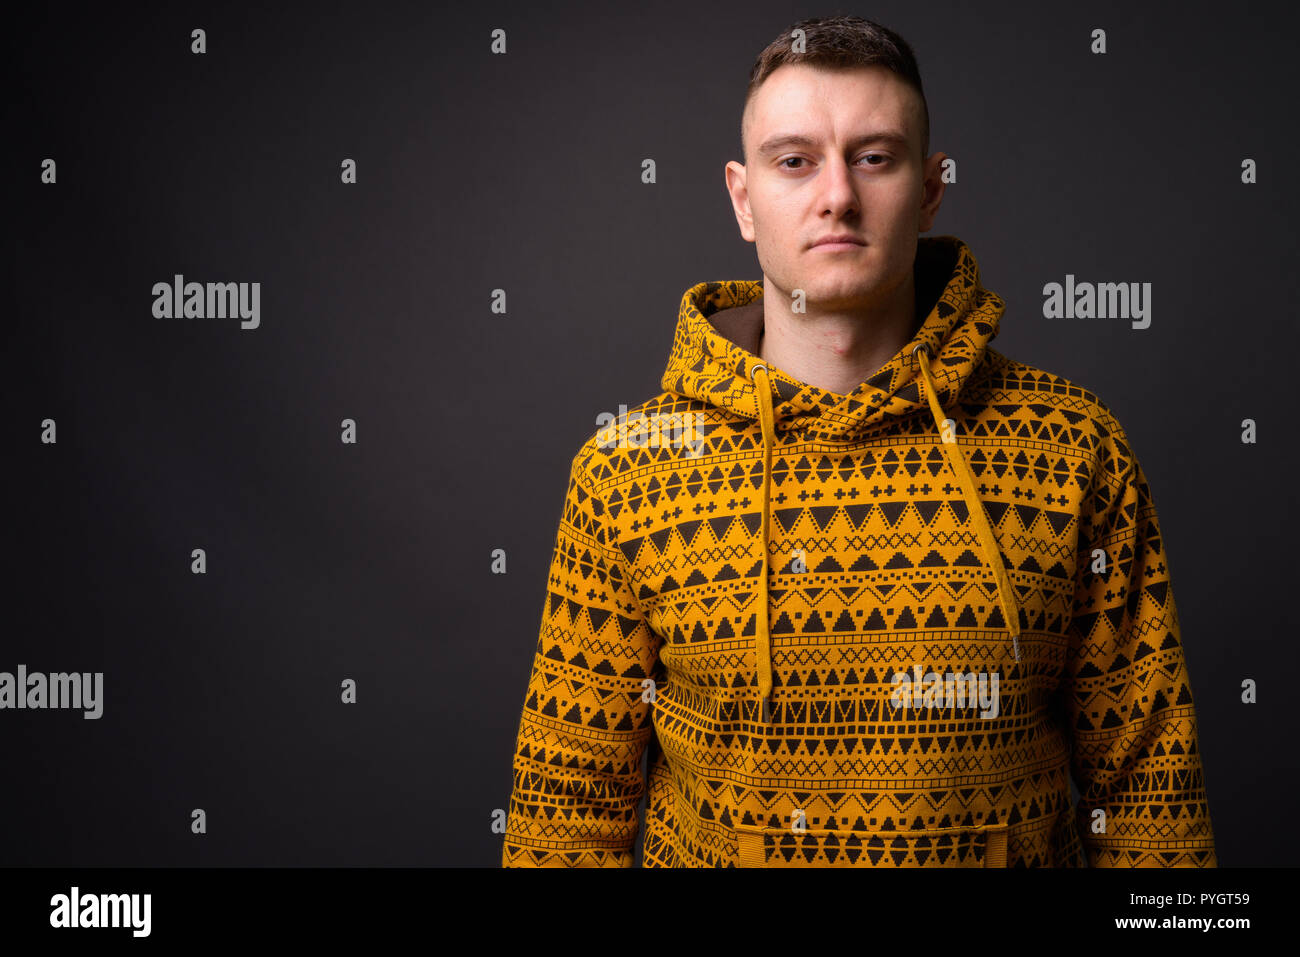 680f1892 Portrait of young handsome man wearing yellow hoodie Stock Photo ...